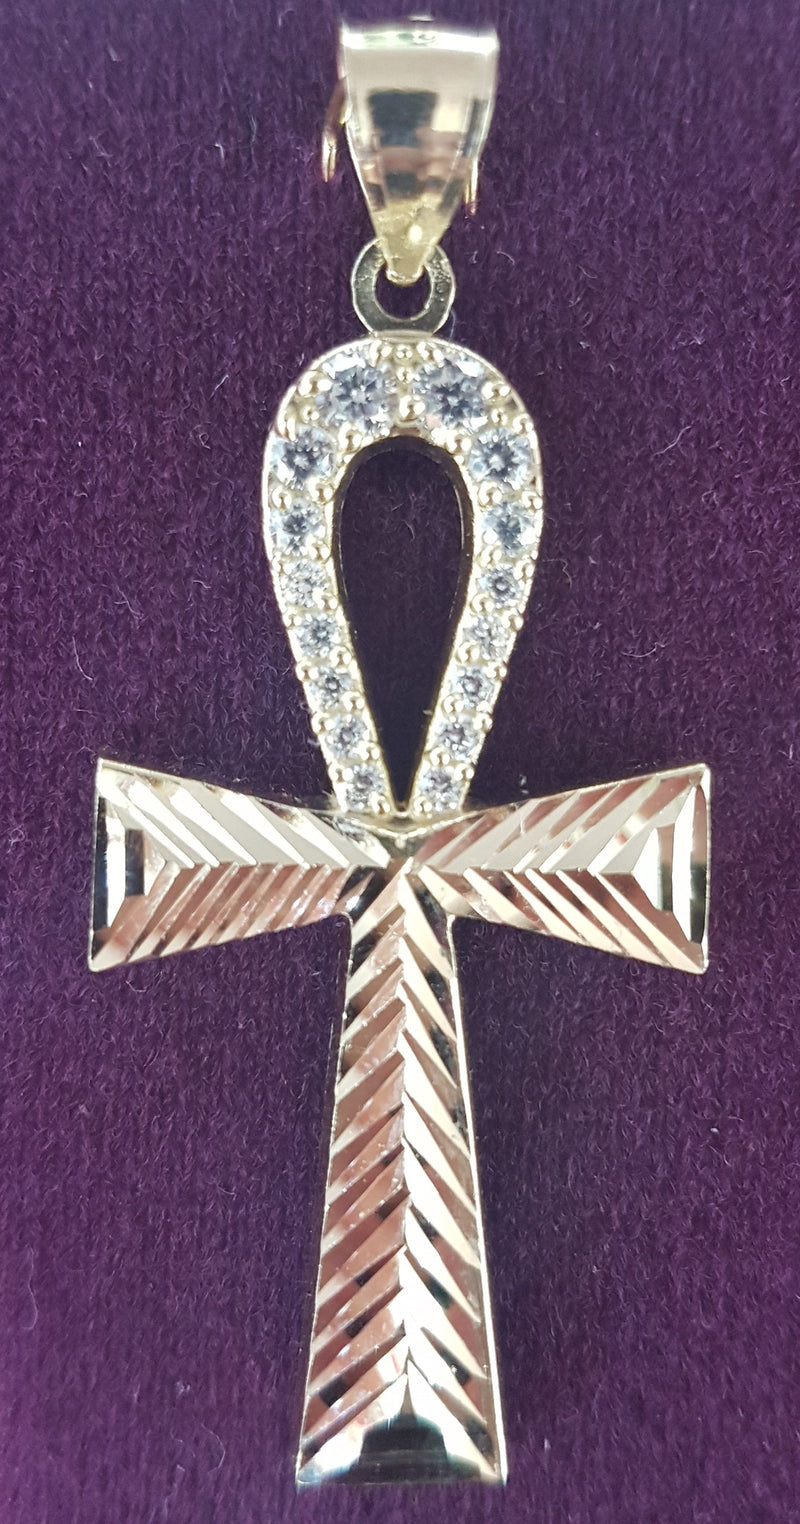 Diamond-Cut Ankh Hengiskraut 10K (ís) - Popular Jewelry